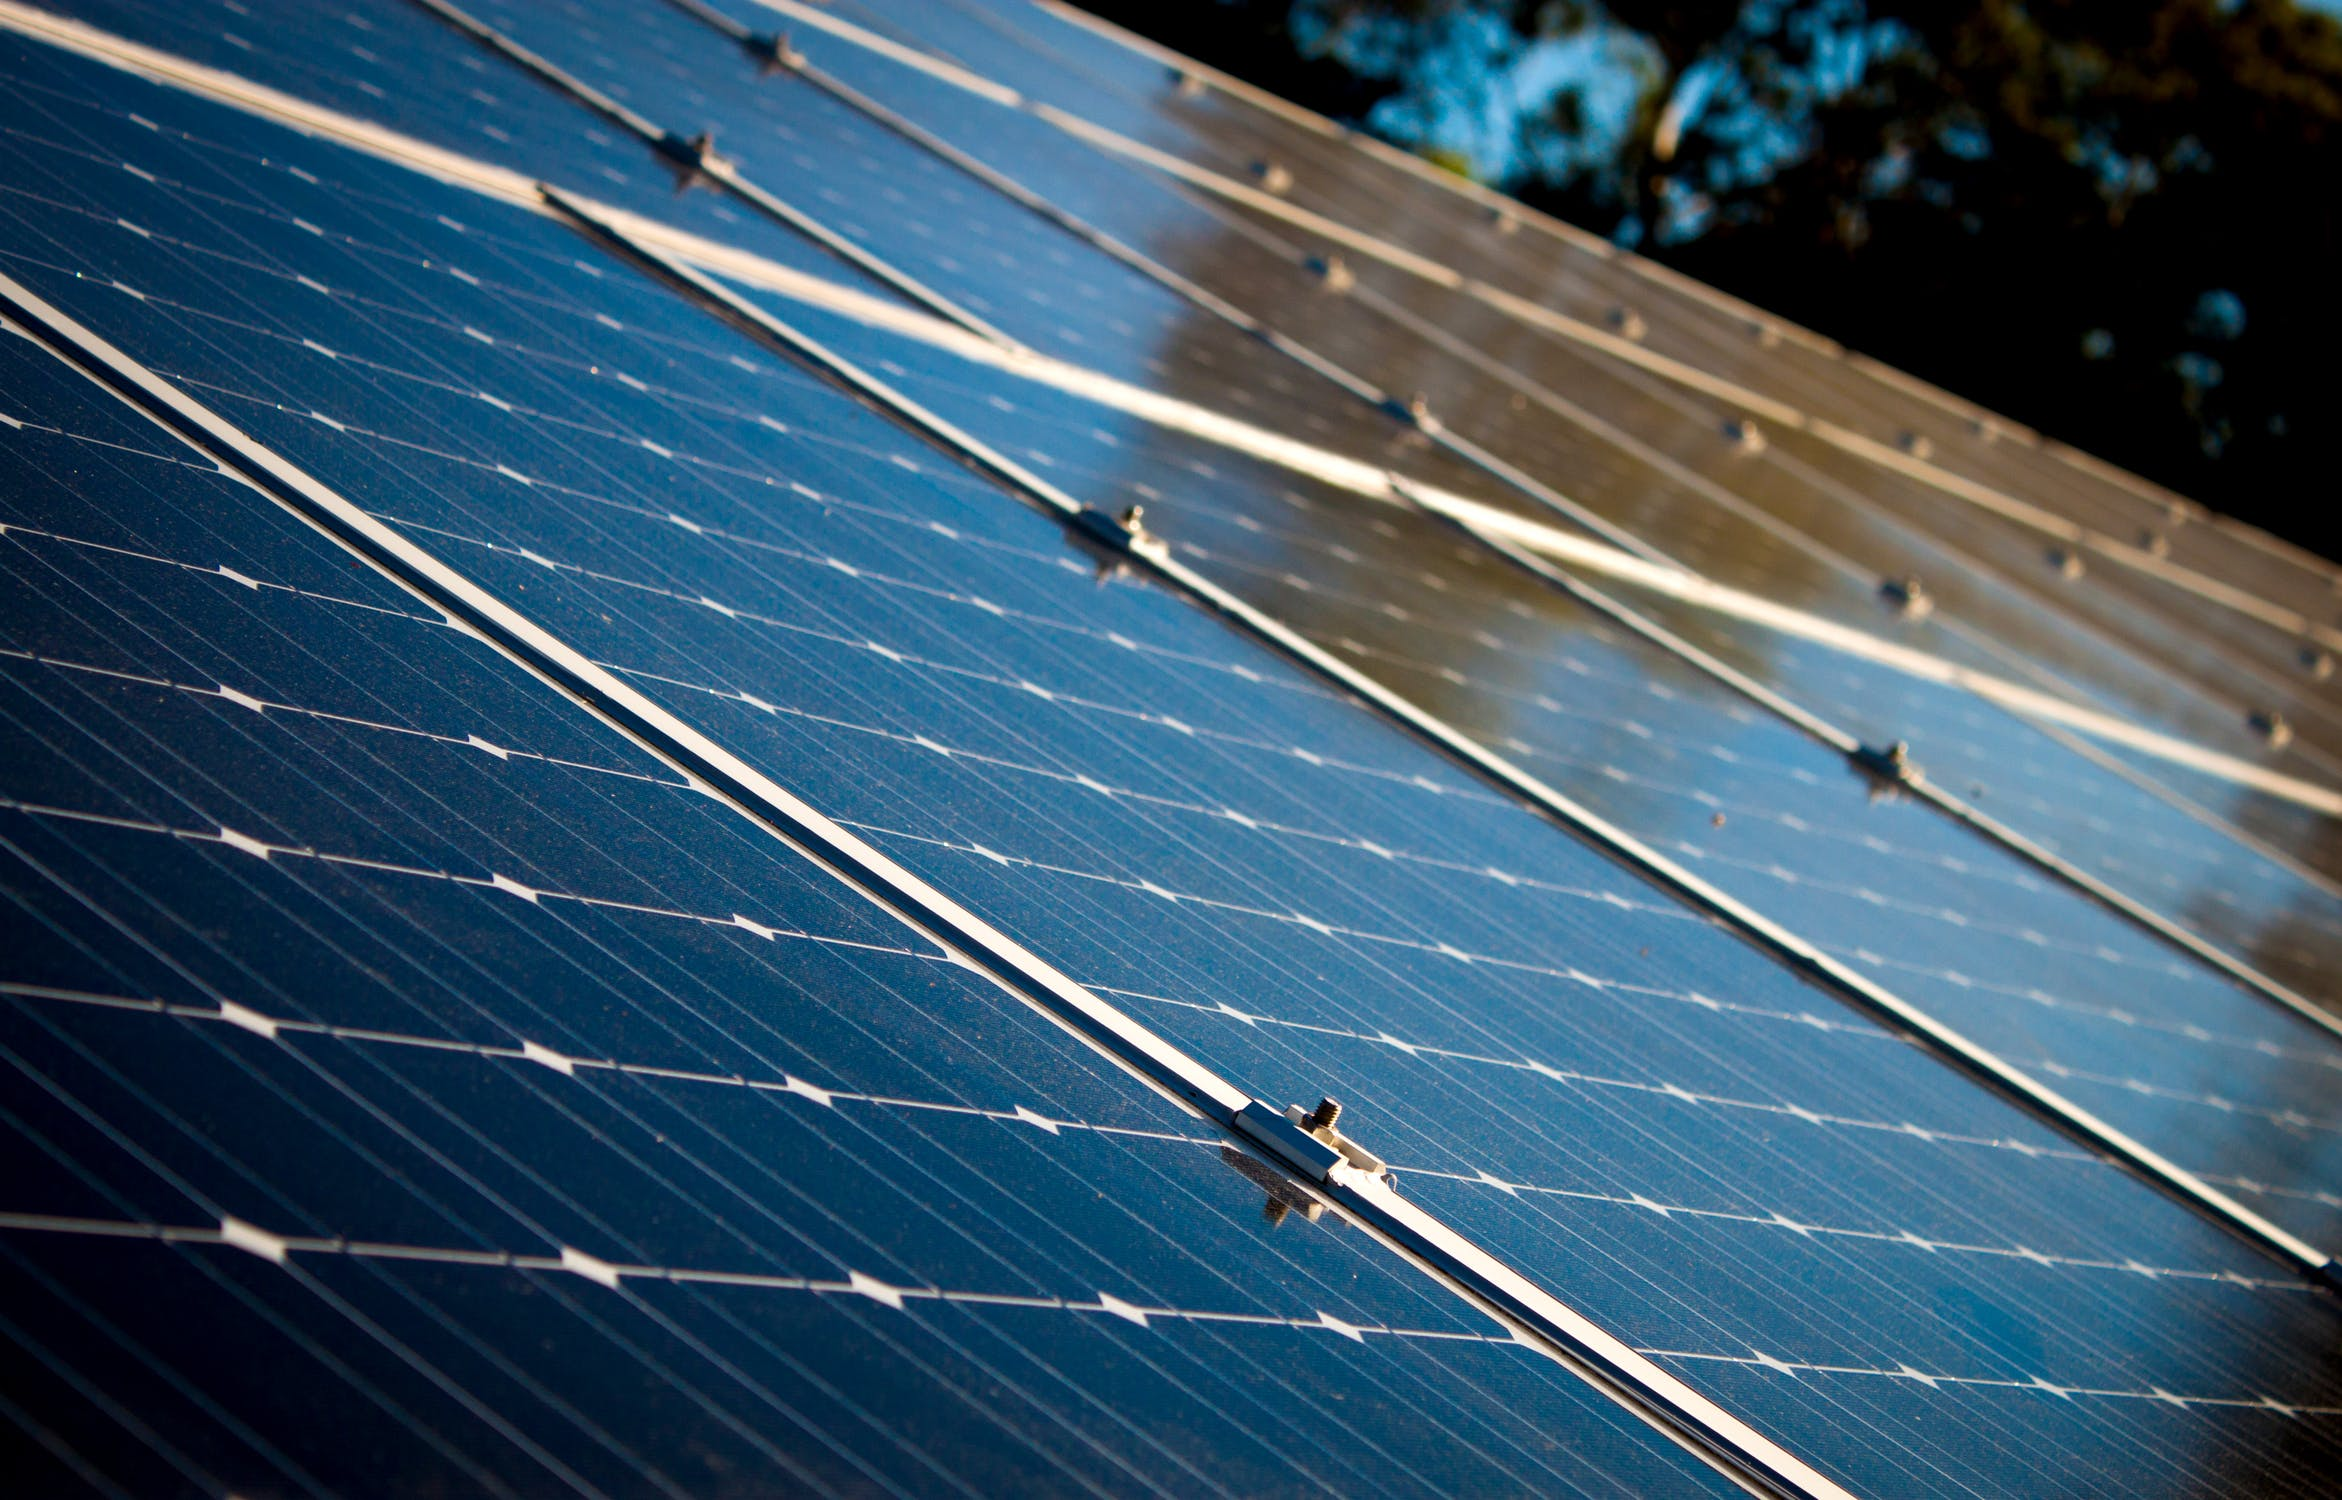 5 Major Reasons Why Homeowners Should Consider Using Solar Energy in Their Homes